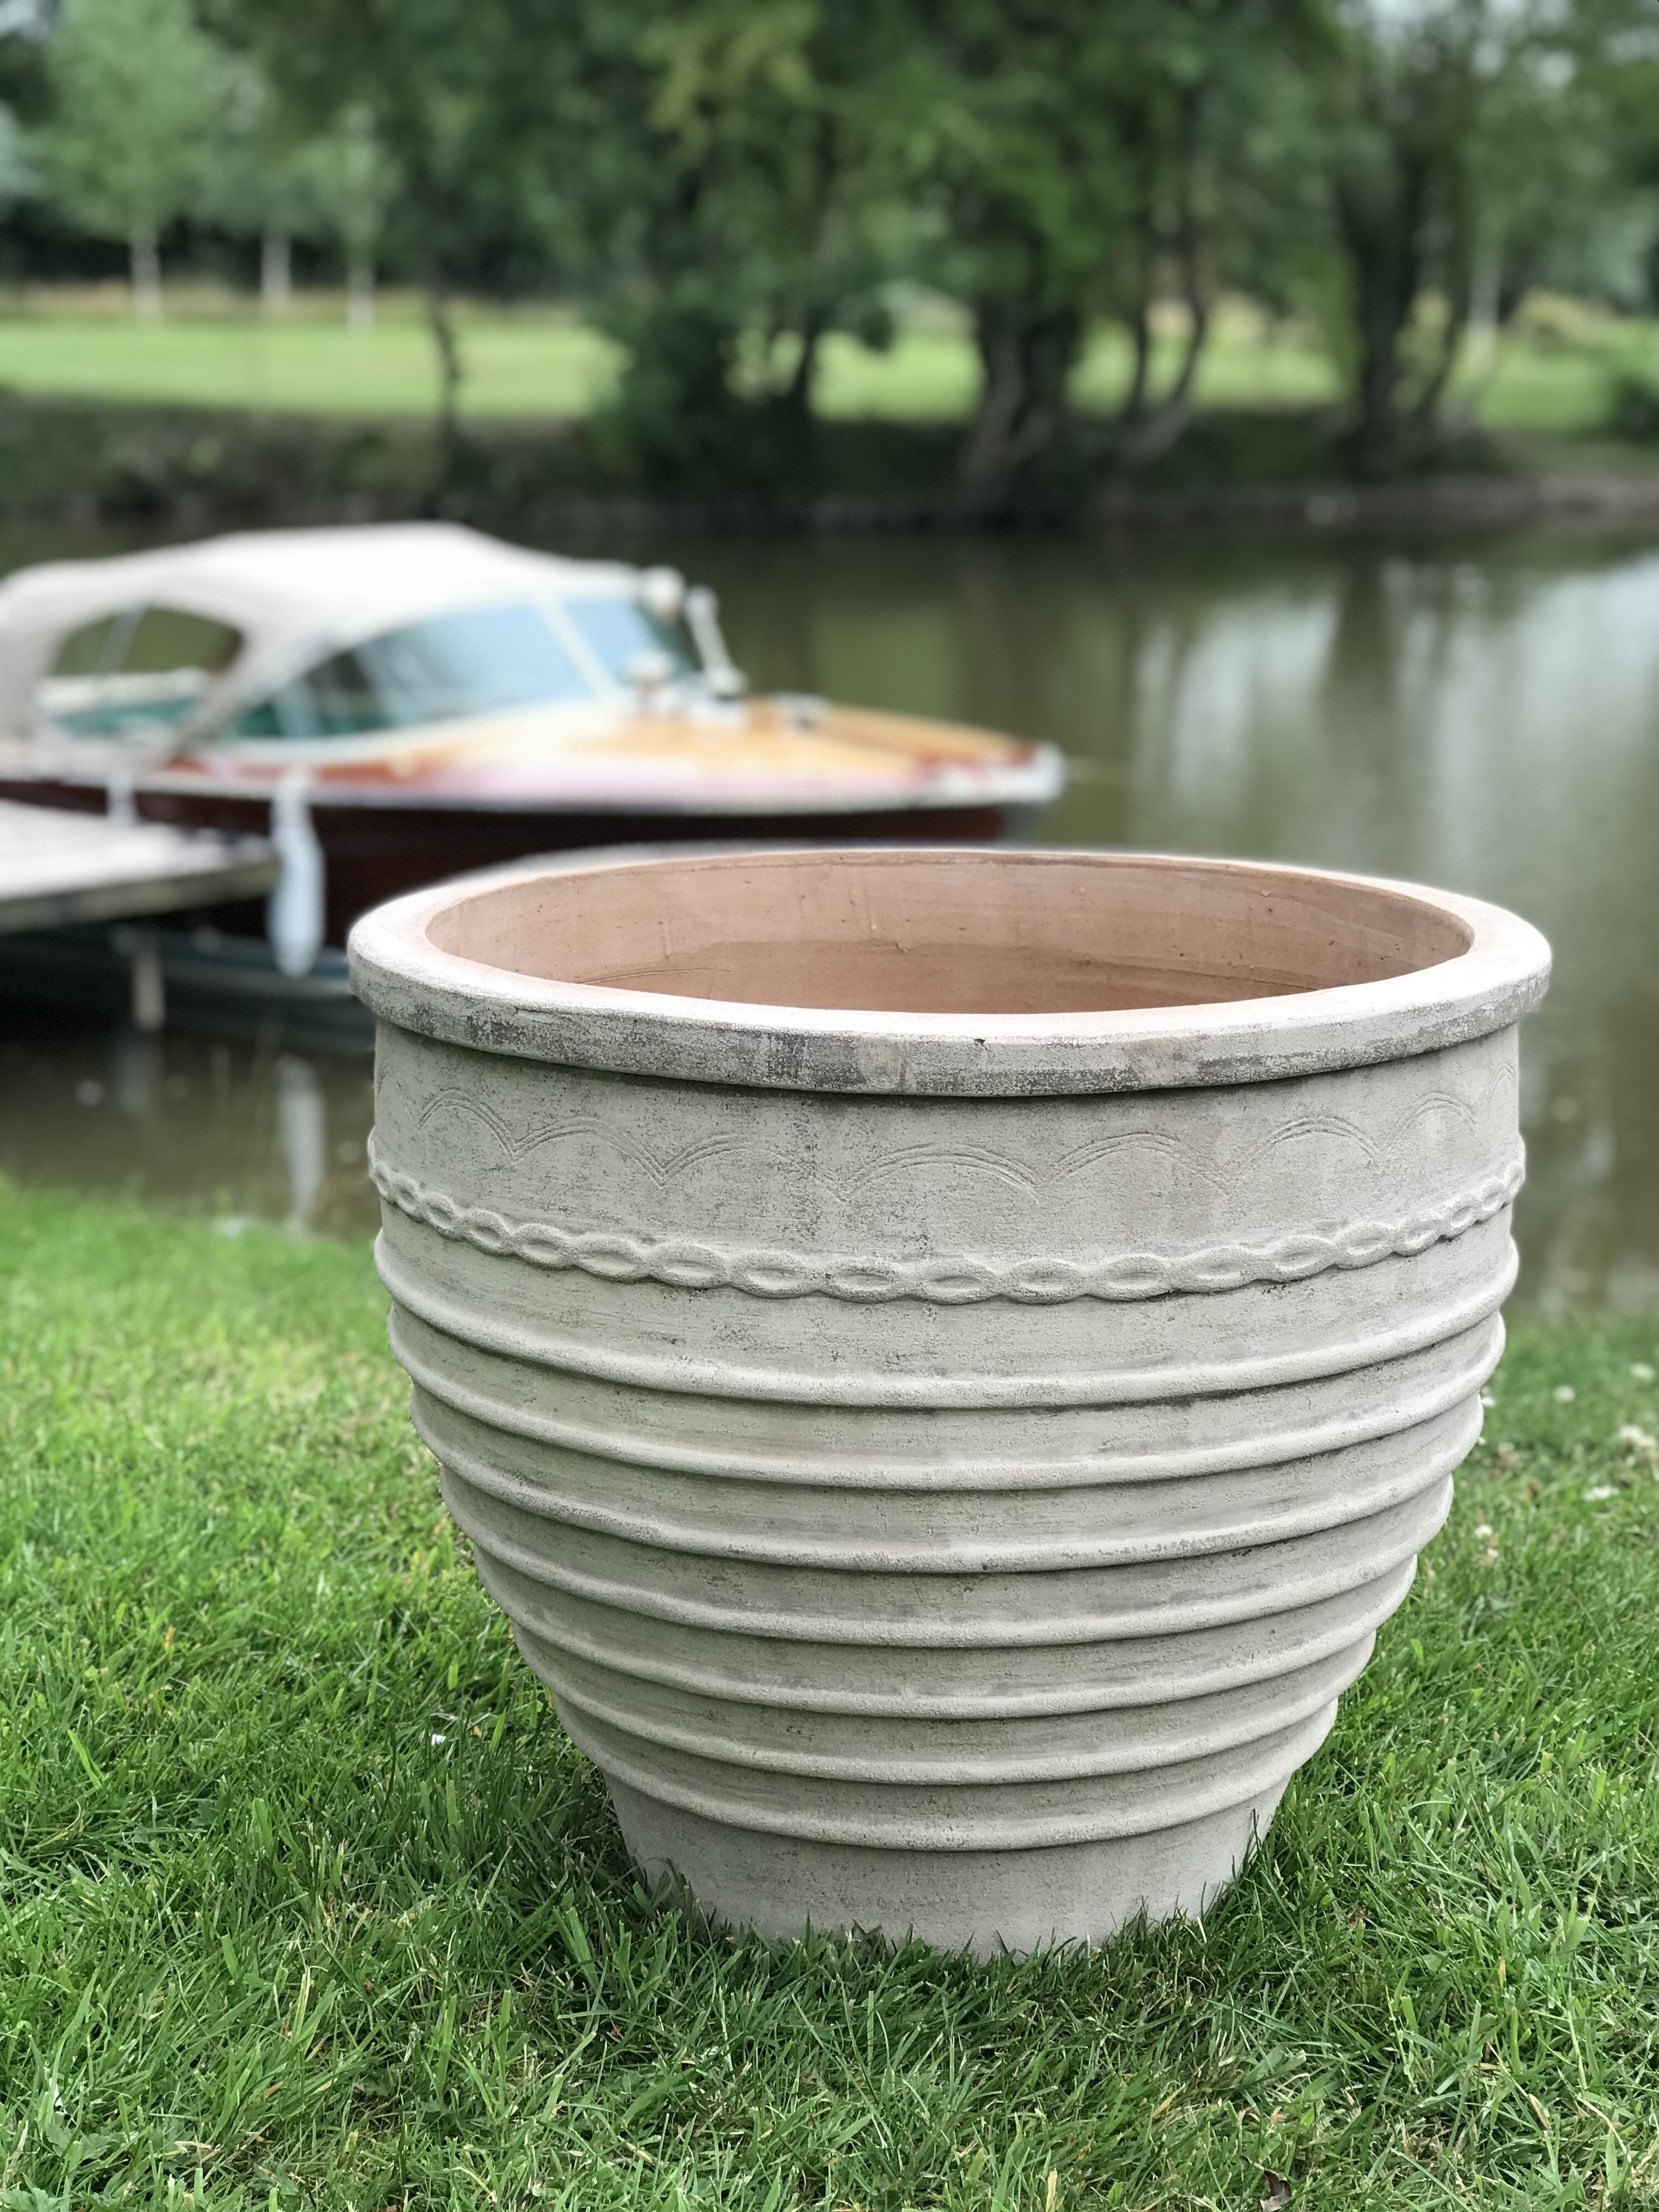 Kefalonia Frostproof Terracotta Planter - Medium